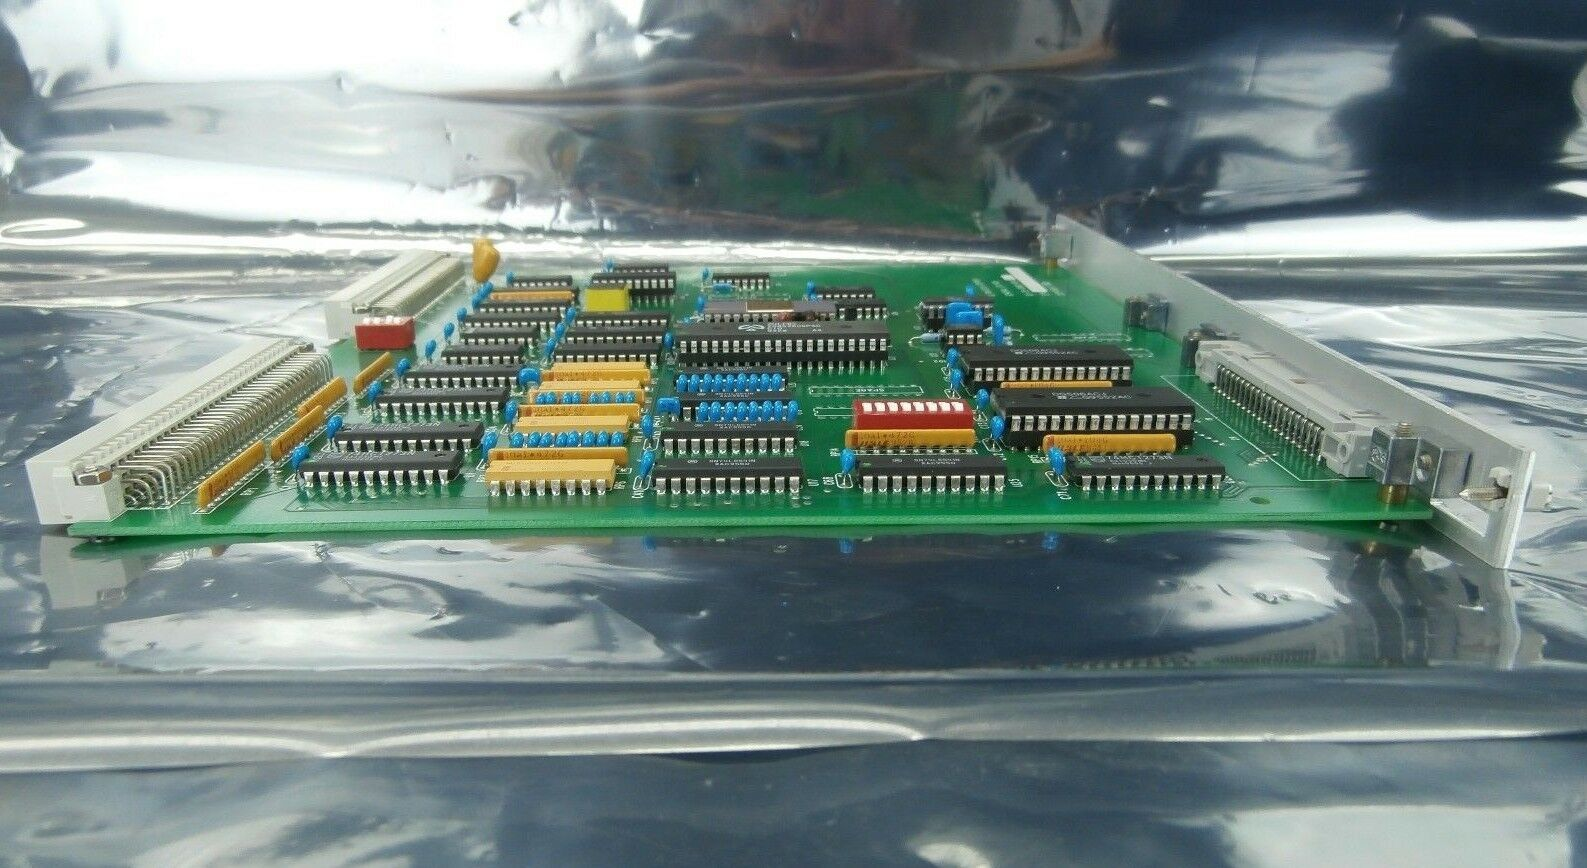 Ultratech Stepper 03-20-01082 General I/O PCB VME Card 4700 Titan Used Working